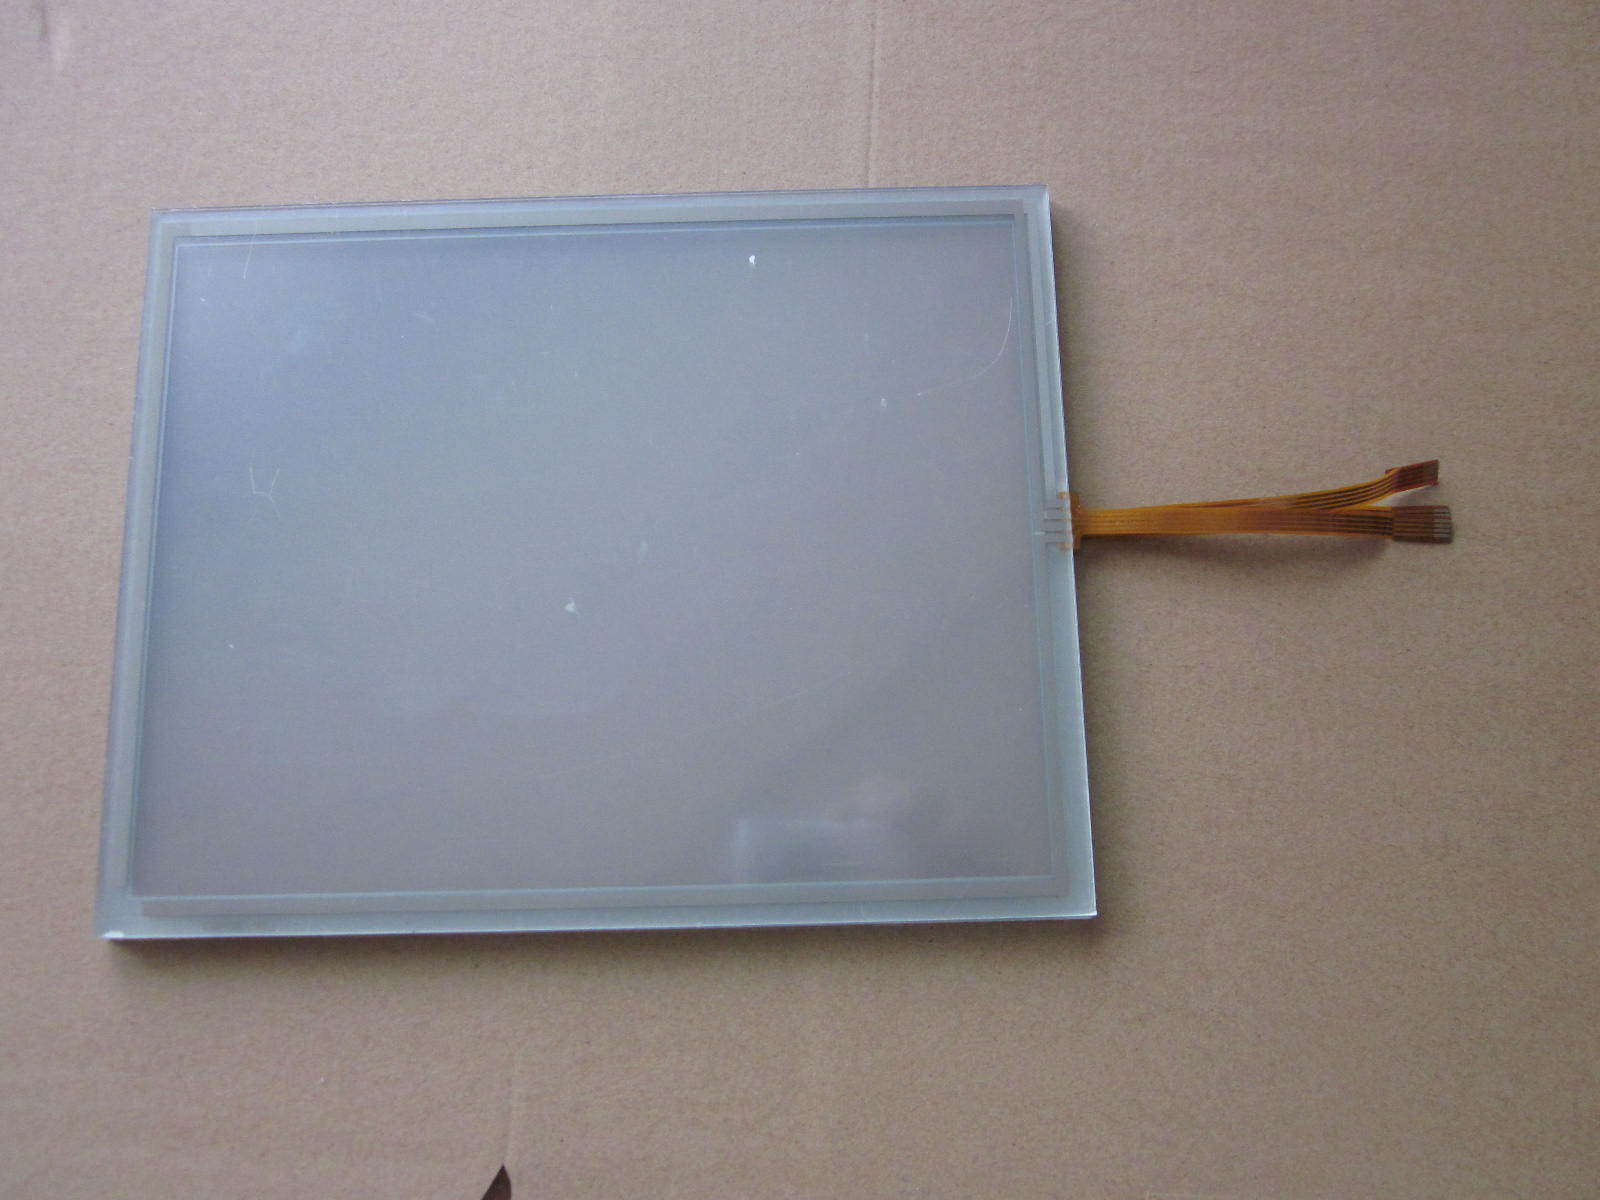 10.4 Inch MT510T MT510TV4CN MT510LV4CN MT510SV3CN Touch Glass Panel for HMI Panel repair~do it yourself,New & Have in stock10.4 Inch MT510T MT510TV4CN MT510LV4CN MT510SV3CN Touch Glass Panel for HMI Panel repair~do it yourself,New & Have in stock